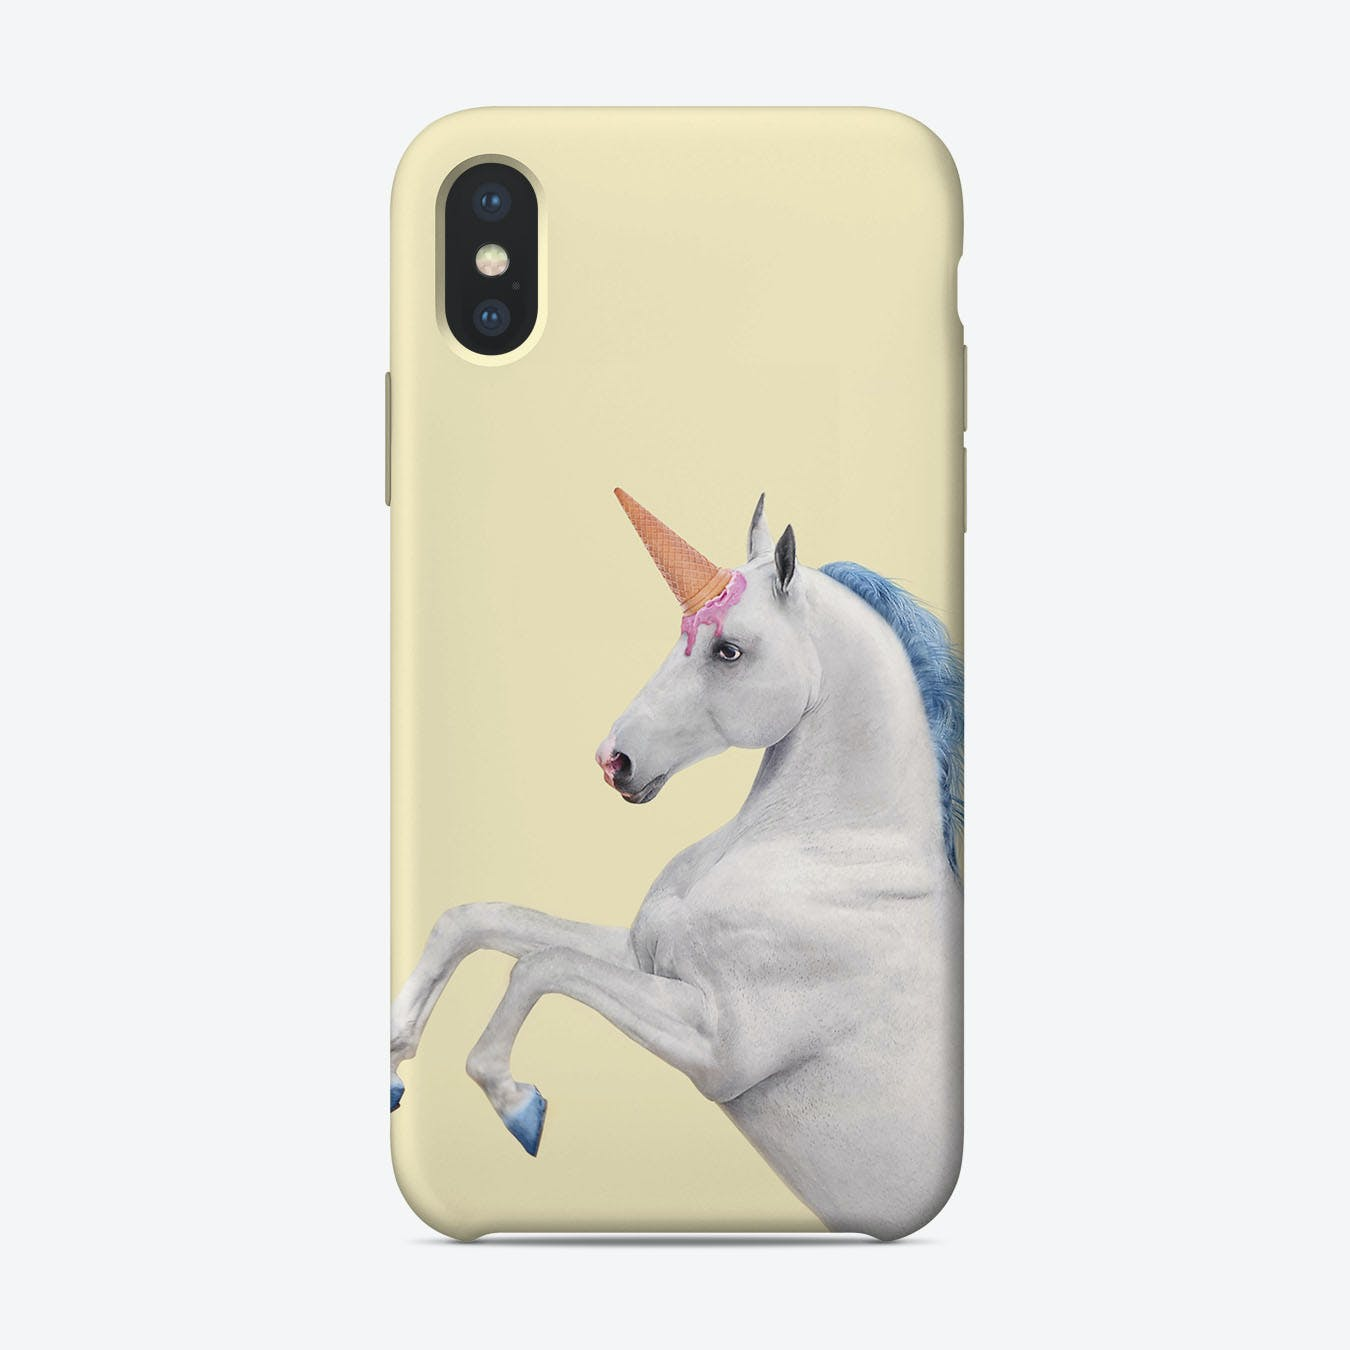 Unicorn iPhone Case